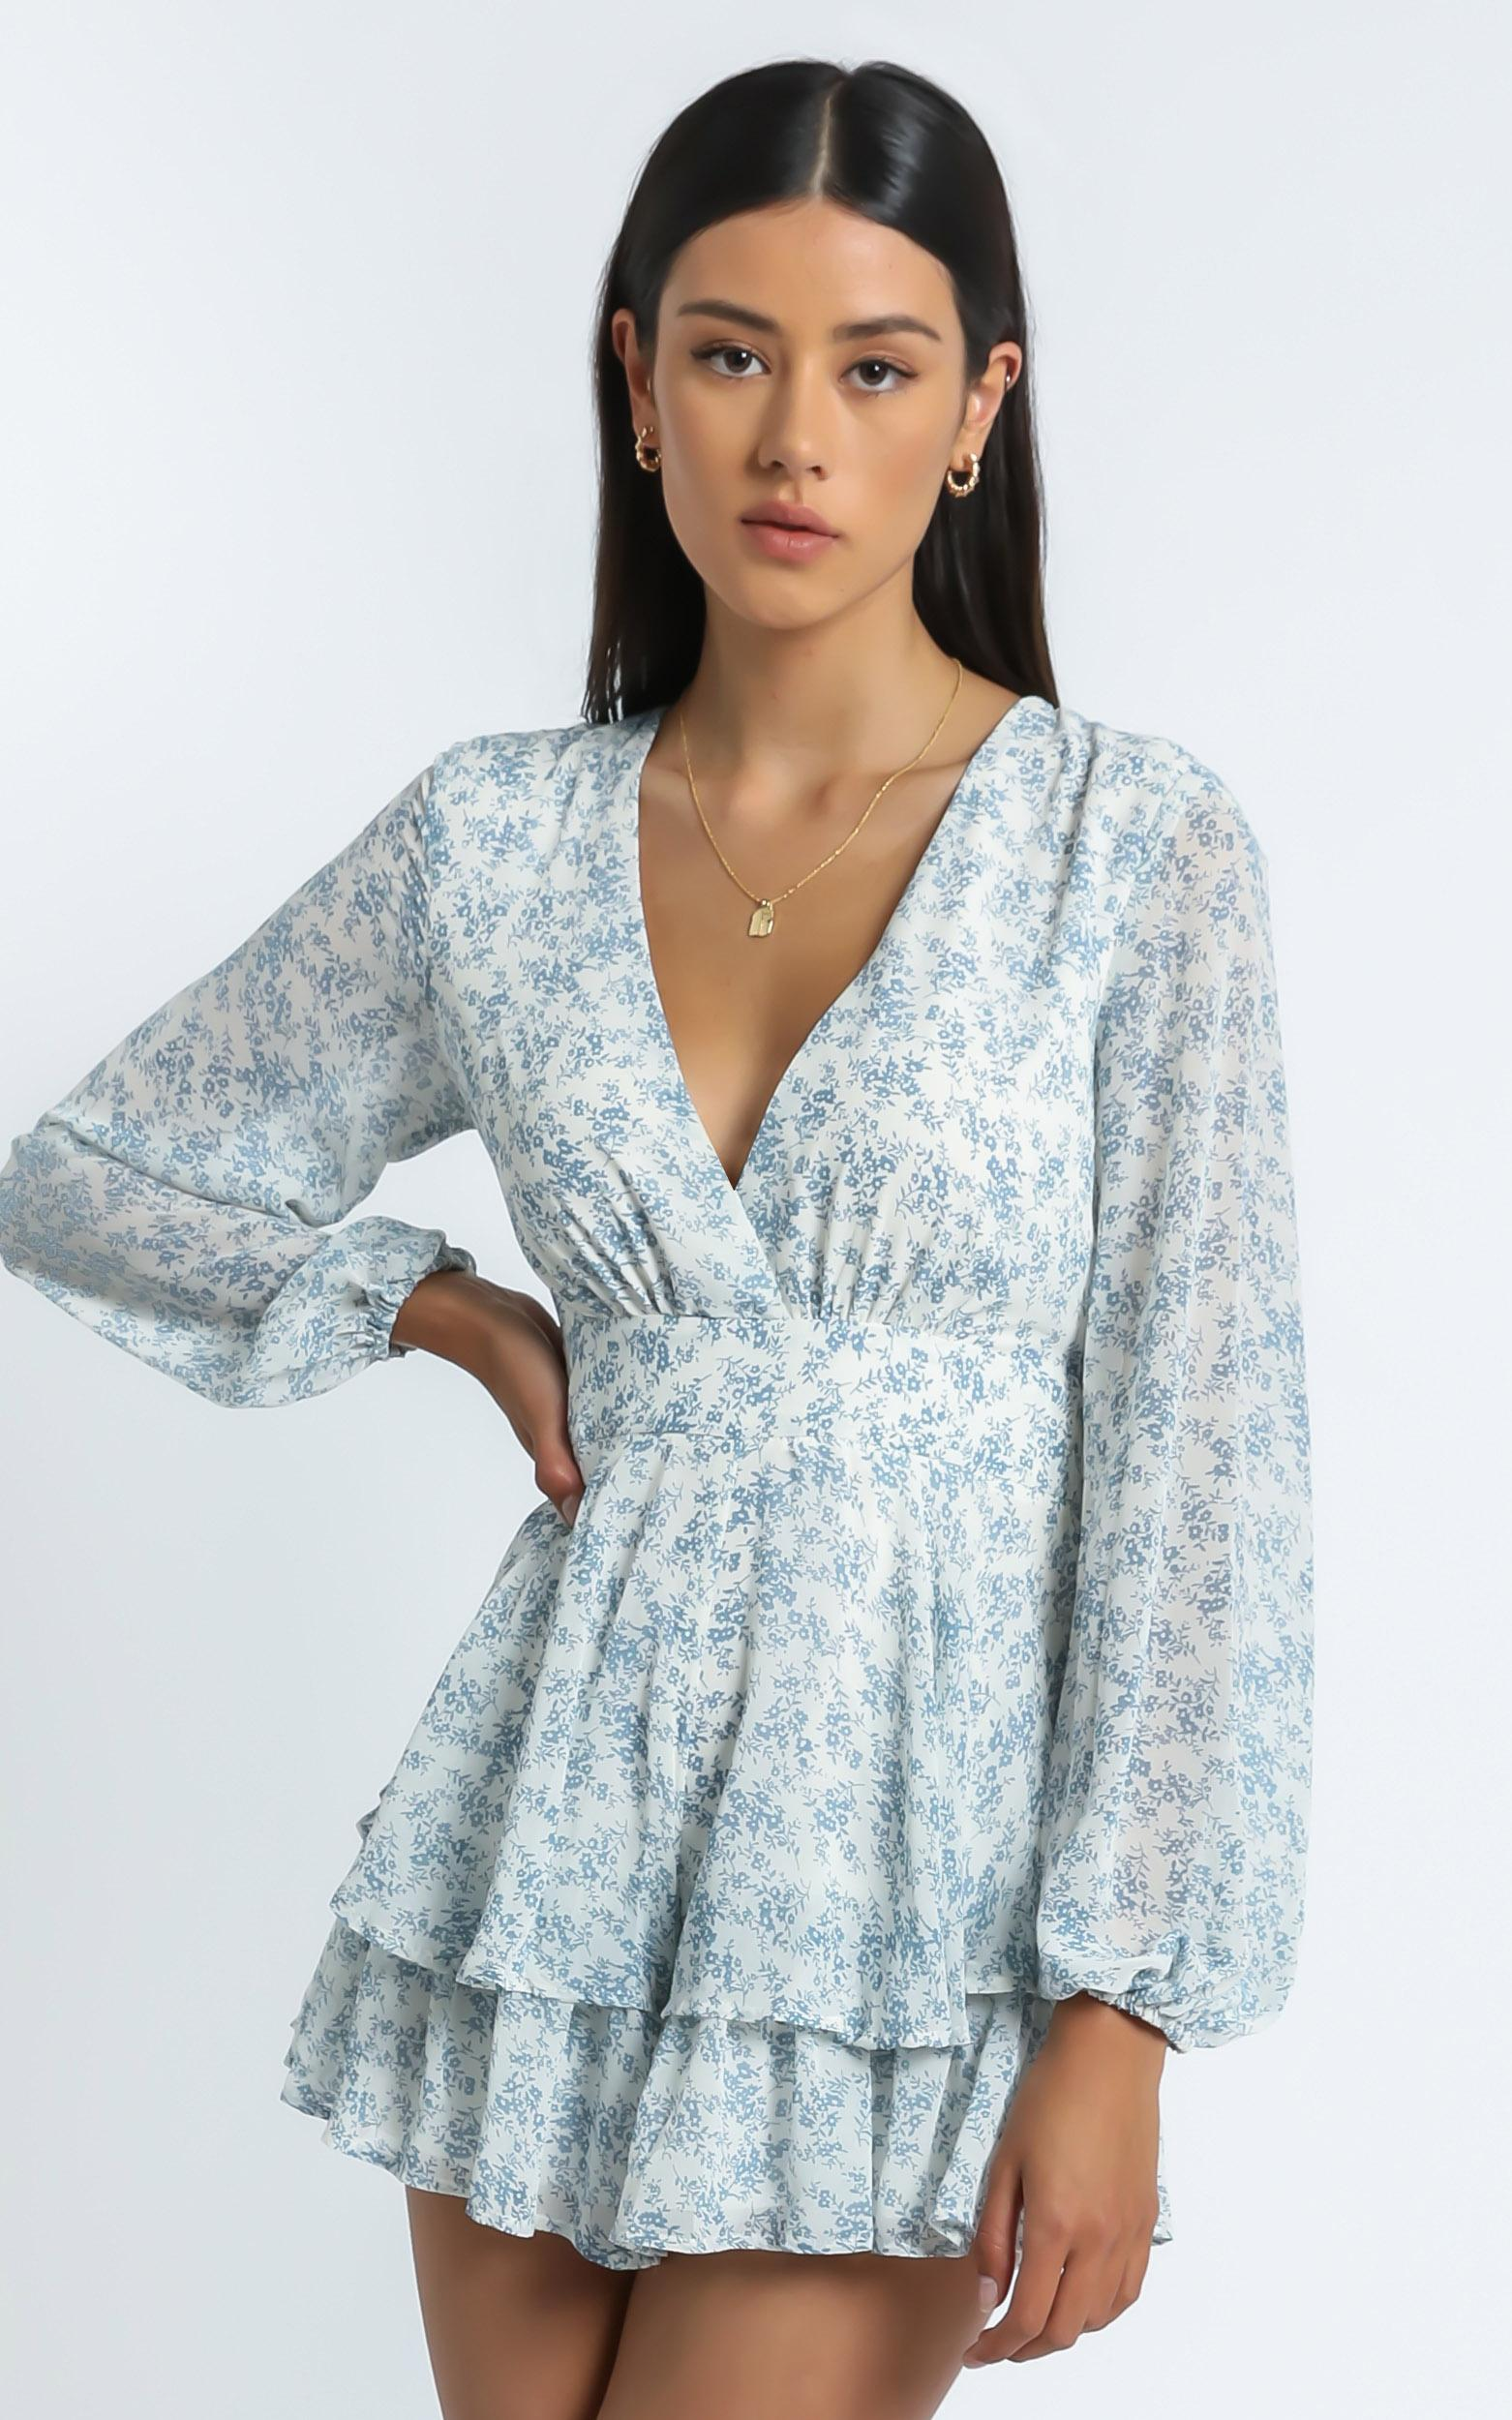 Monique Playsuit in Blue - 6 (XS), BLU1, hi-res image number null